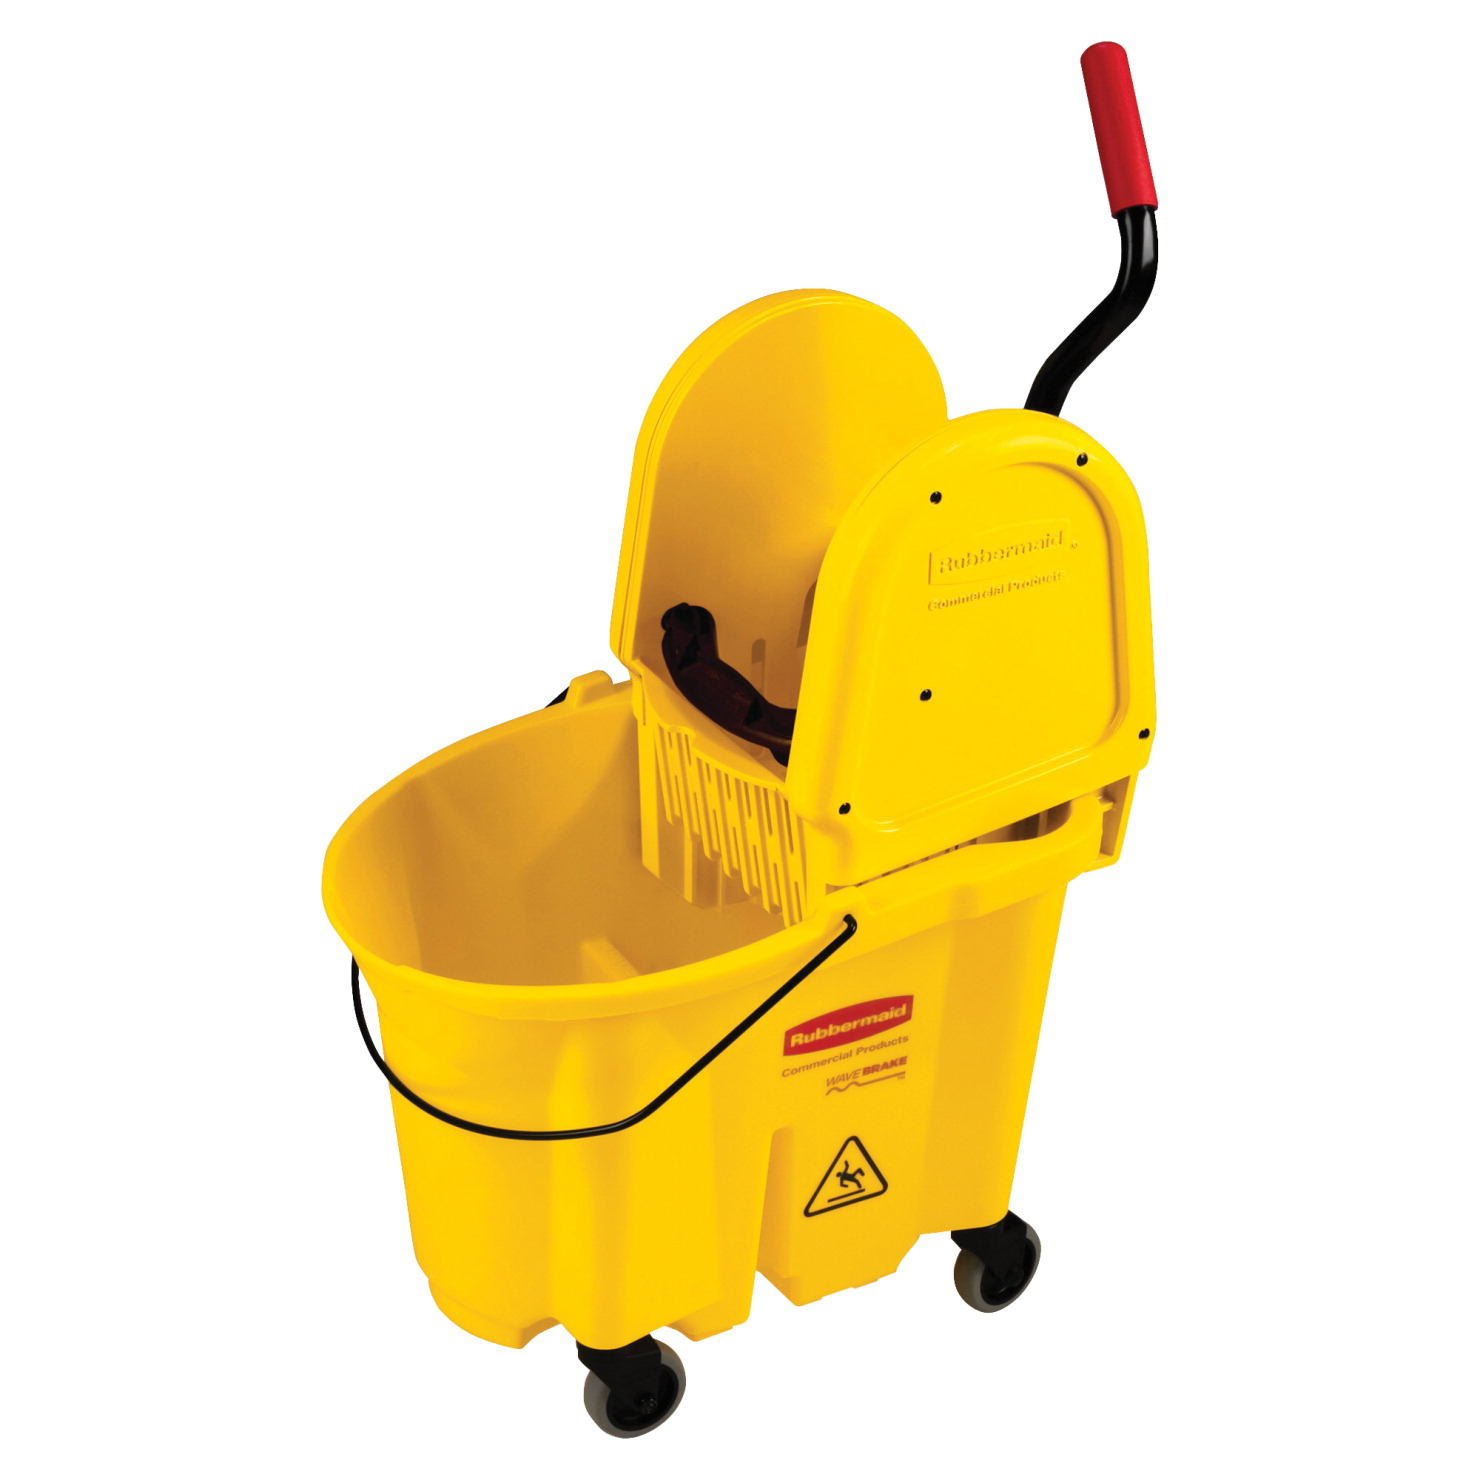 Rubbermaid WaveBrake Mop Bucket Wringer, 20.5 x 16.6 x 25.5 in, Yellow